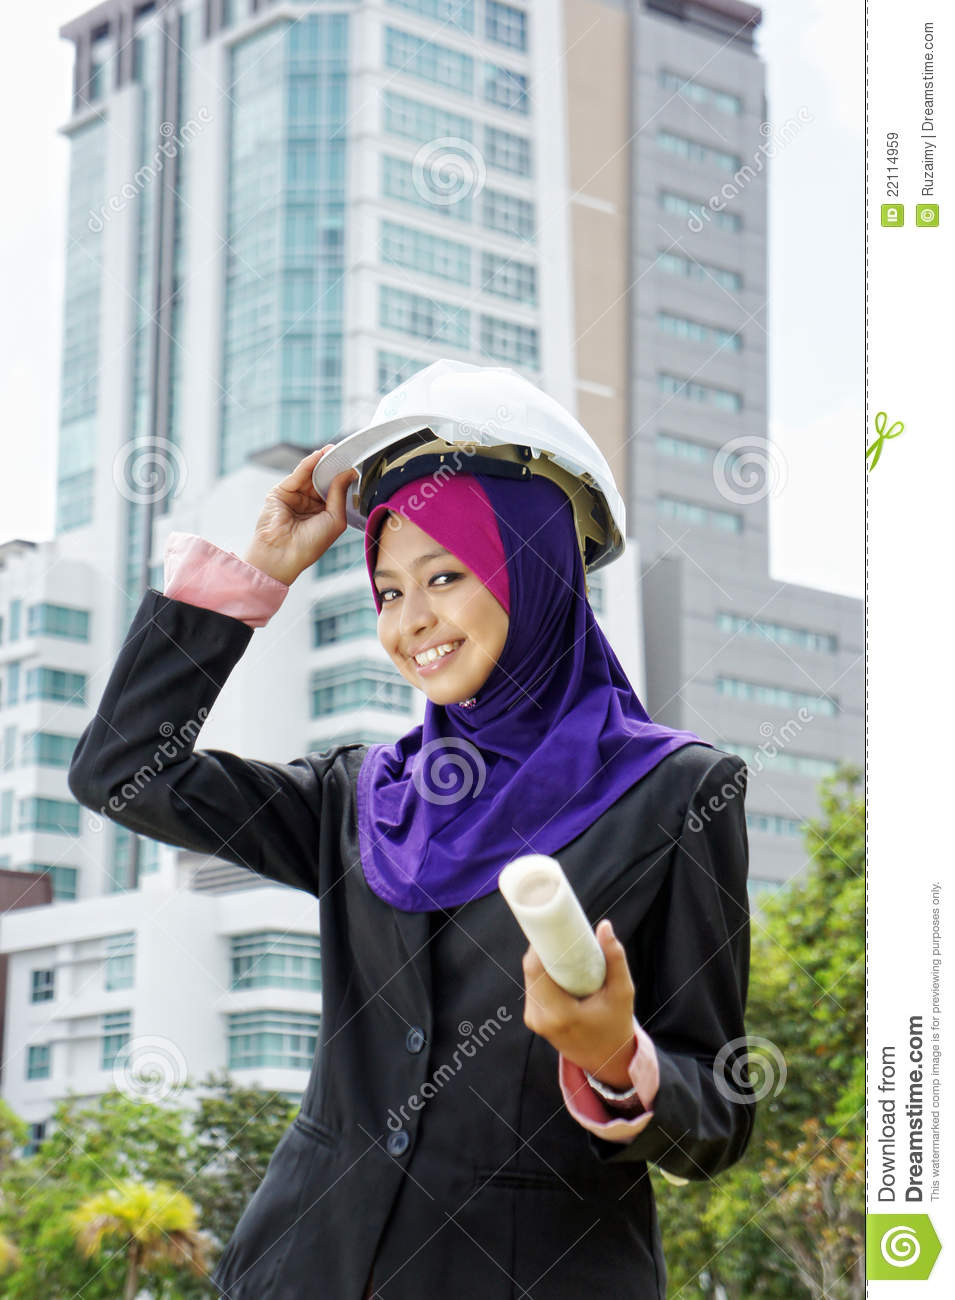 minqin single muslim girls Featured profiles of single muslim women from malaysia.